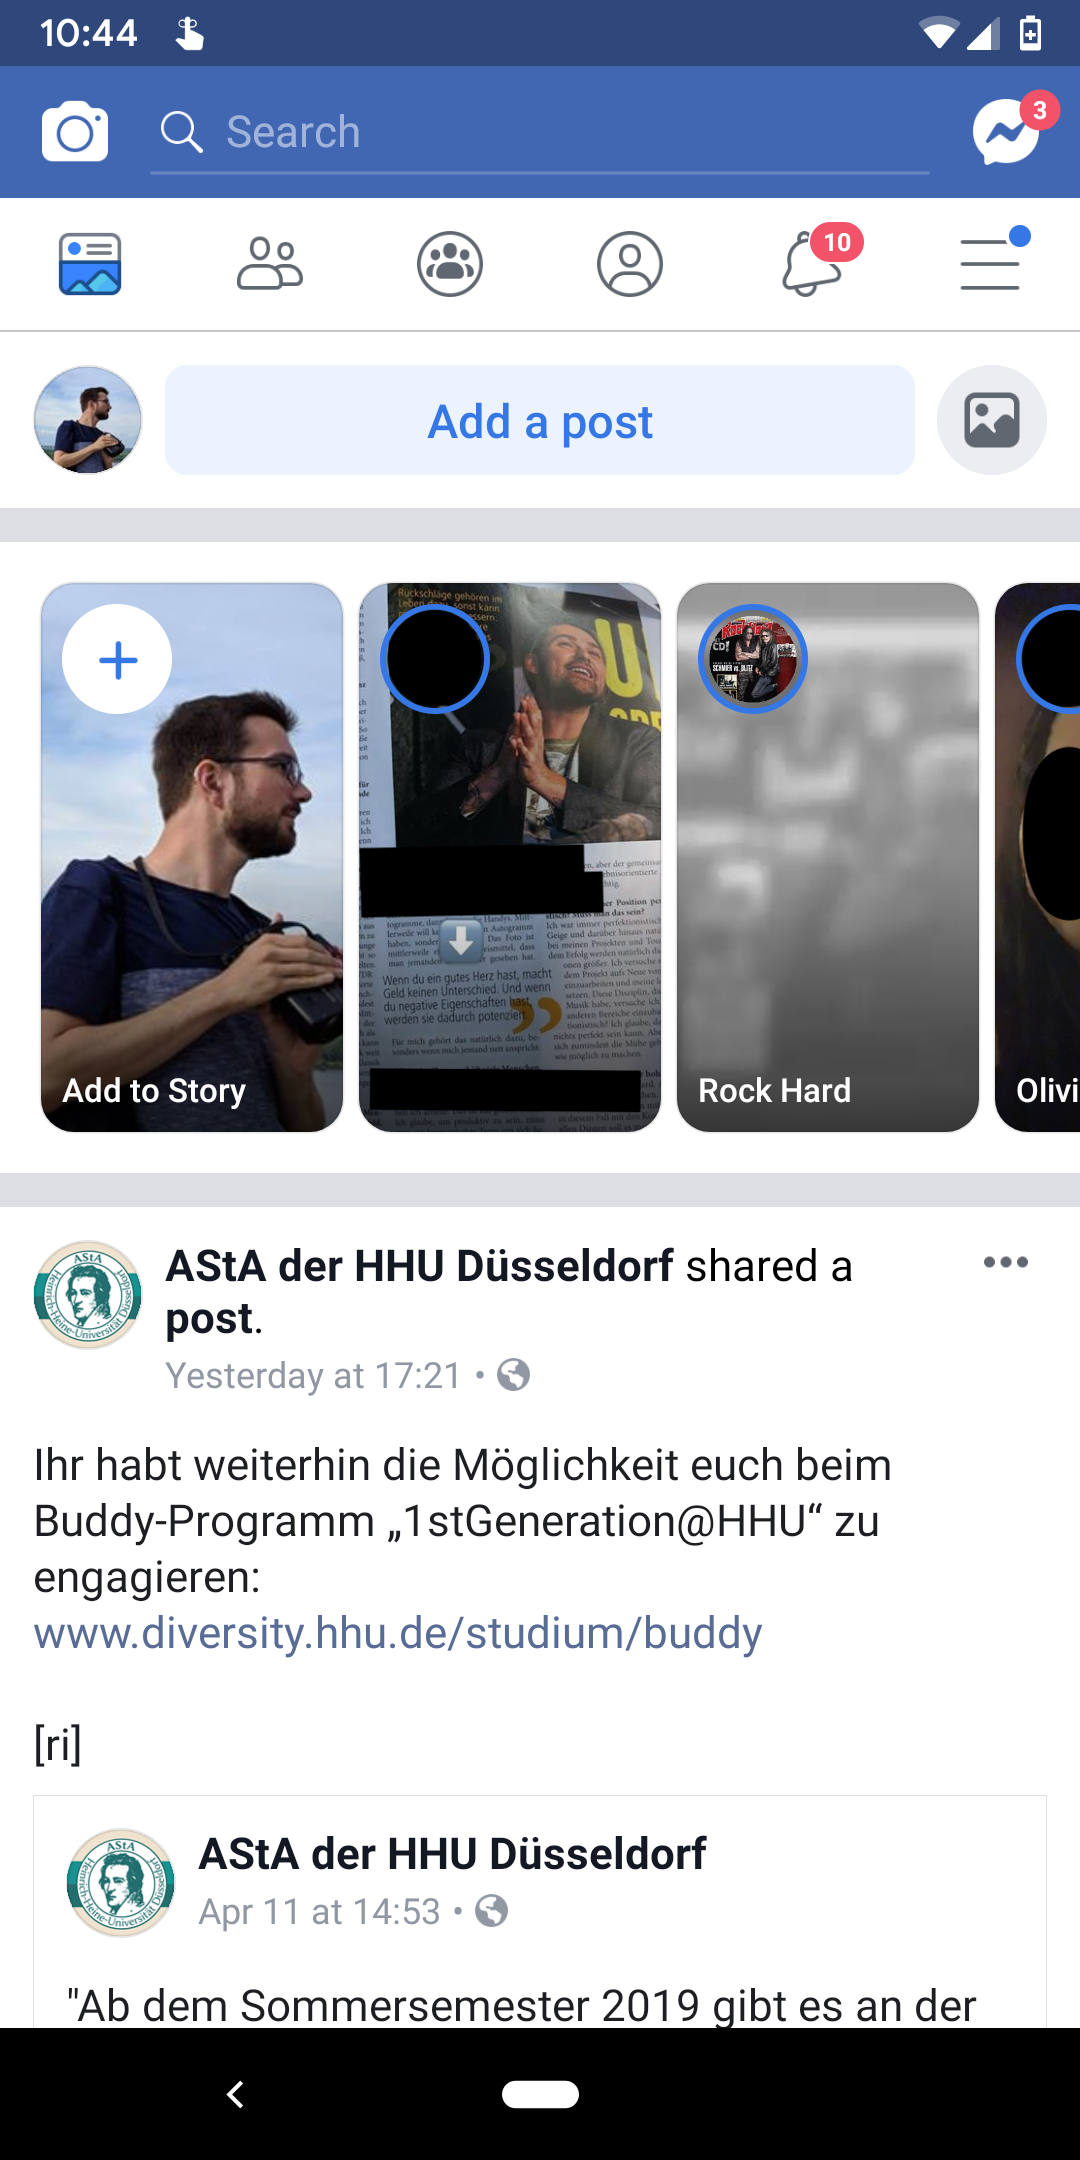 Facebook makeover drops iconic blue app bar, puts more focus on groups